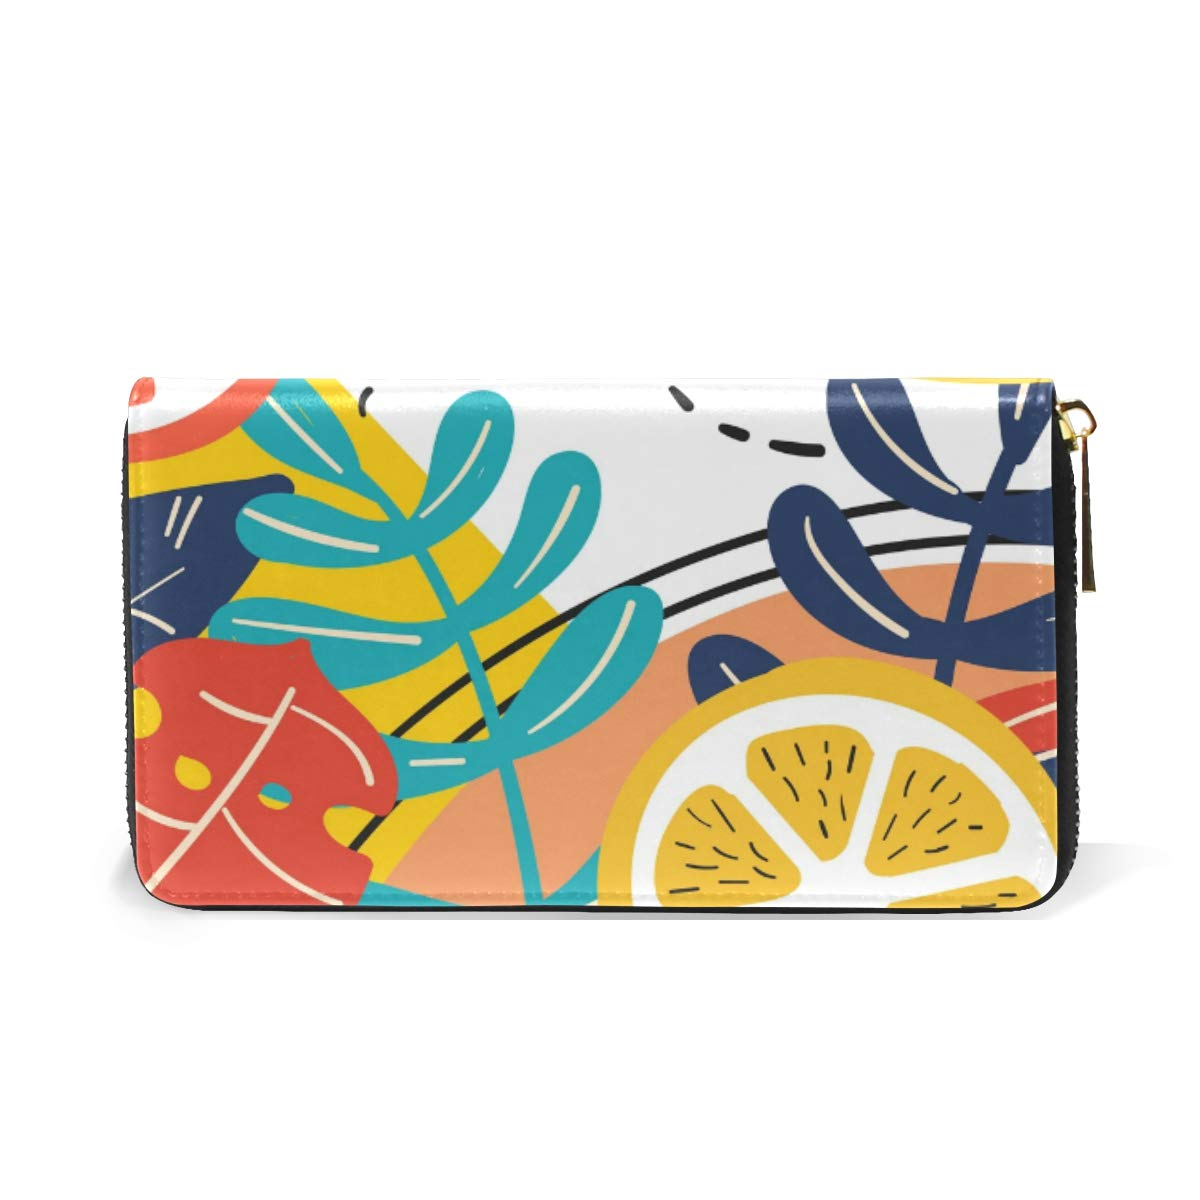 Women Wallet Coin Purse Phone Clutch Pouch Cash Bag Female Girl Card Change Holder Organizer Storage Key Hold Leather Elegant Handbag Party Birthday Gift Colorful Tropical Plants